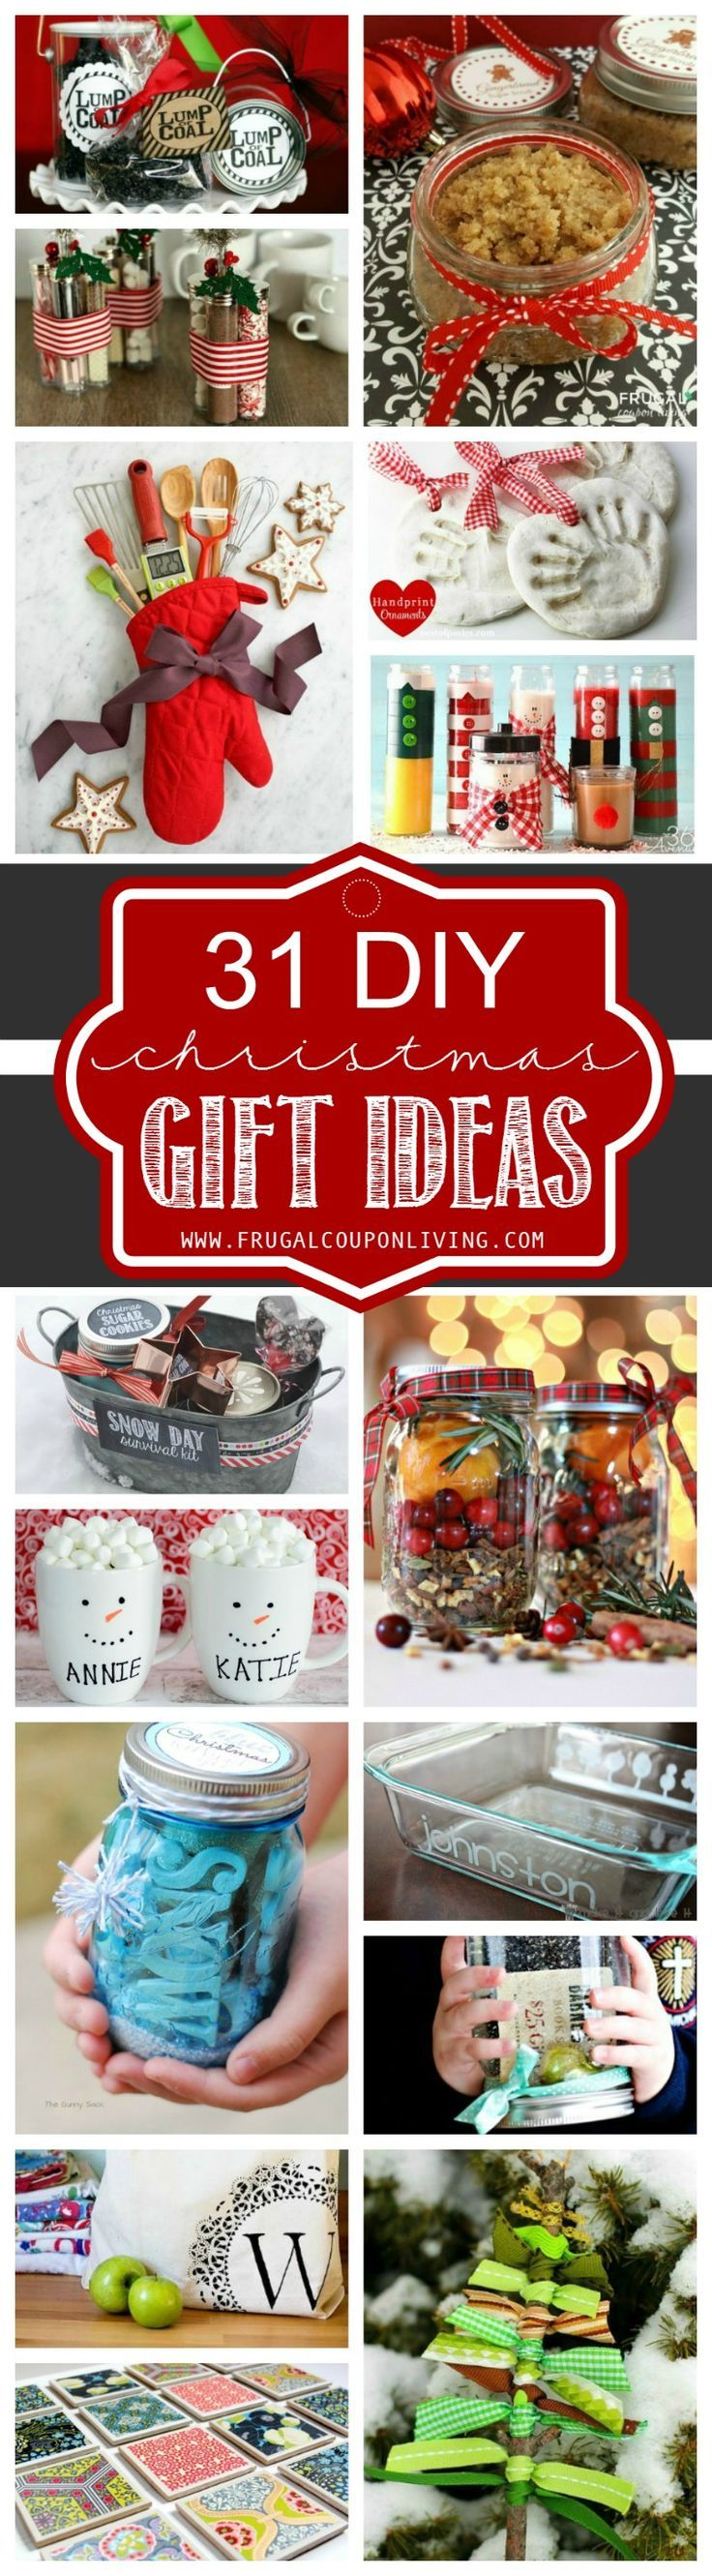 31 DIY Christmas Gift Ideas on Frugal Coupon Living. Homemade Christmas Gift Ideas.